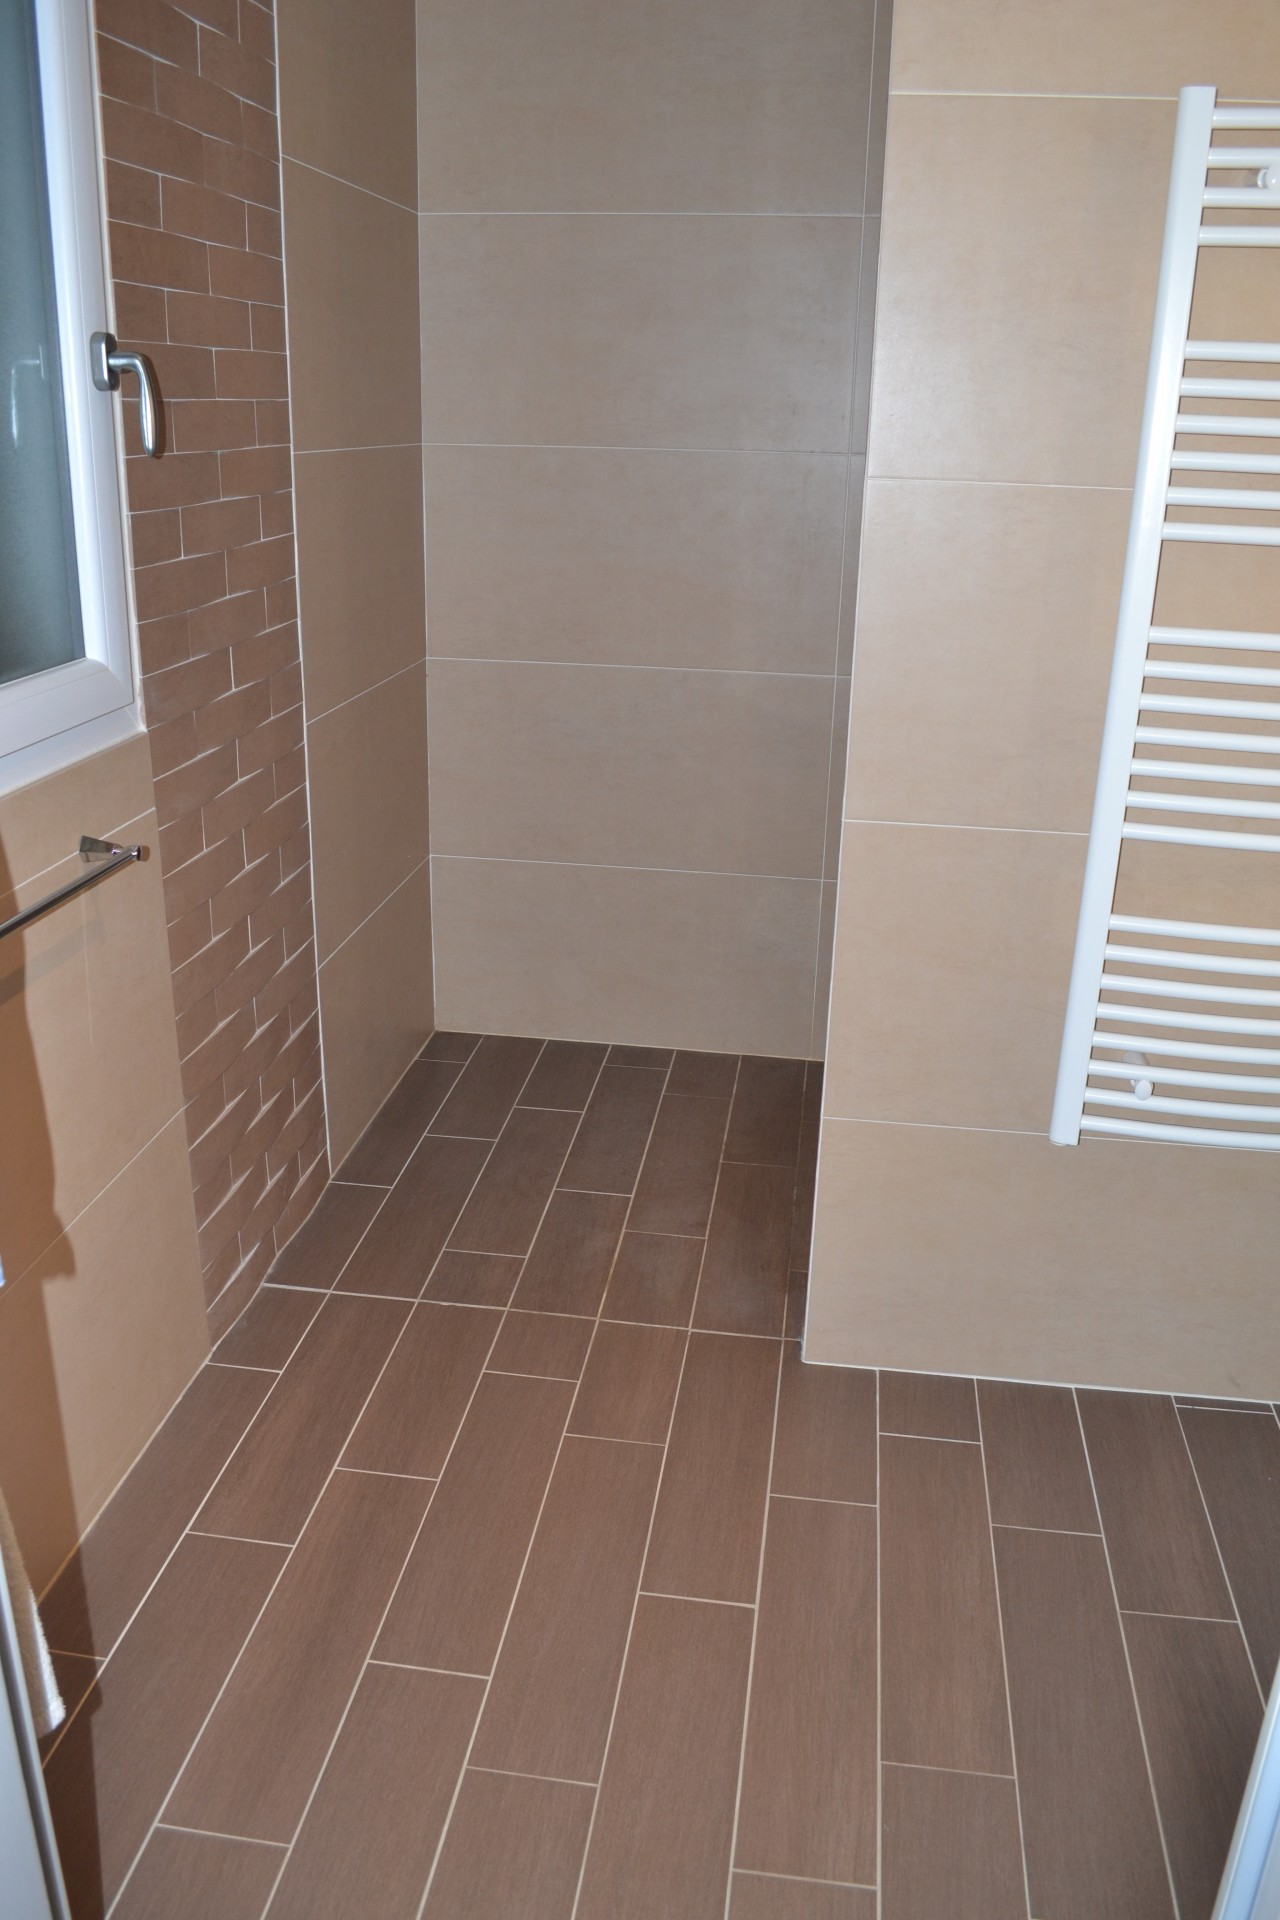 Faience salle de bain taupe for Carrelage bain